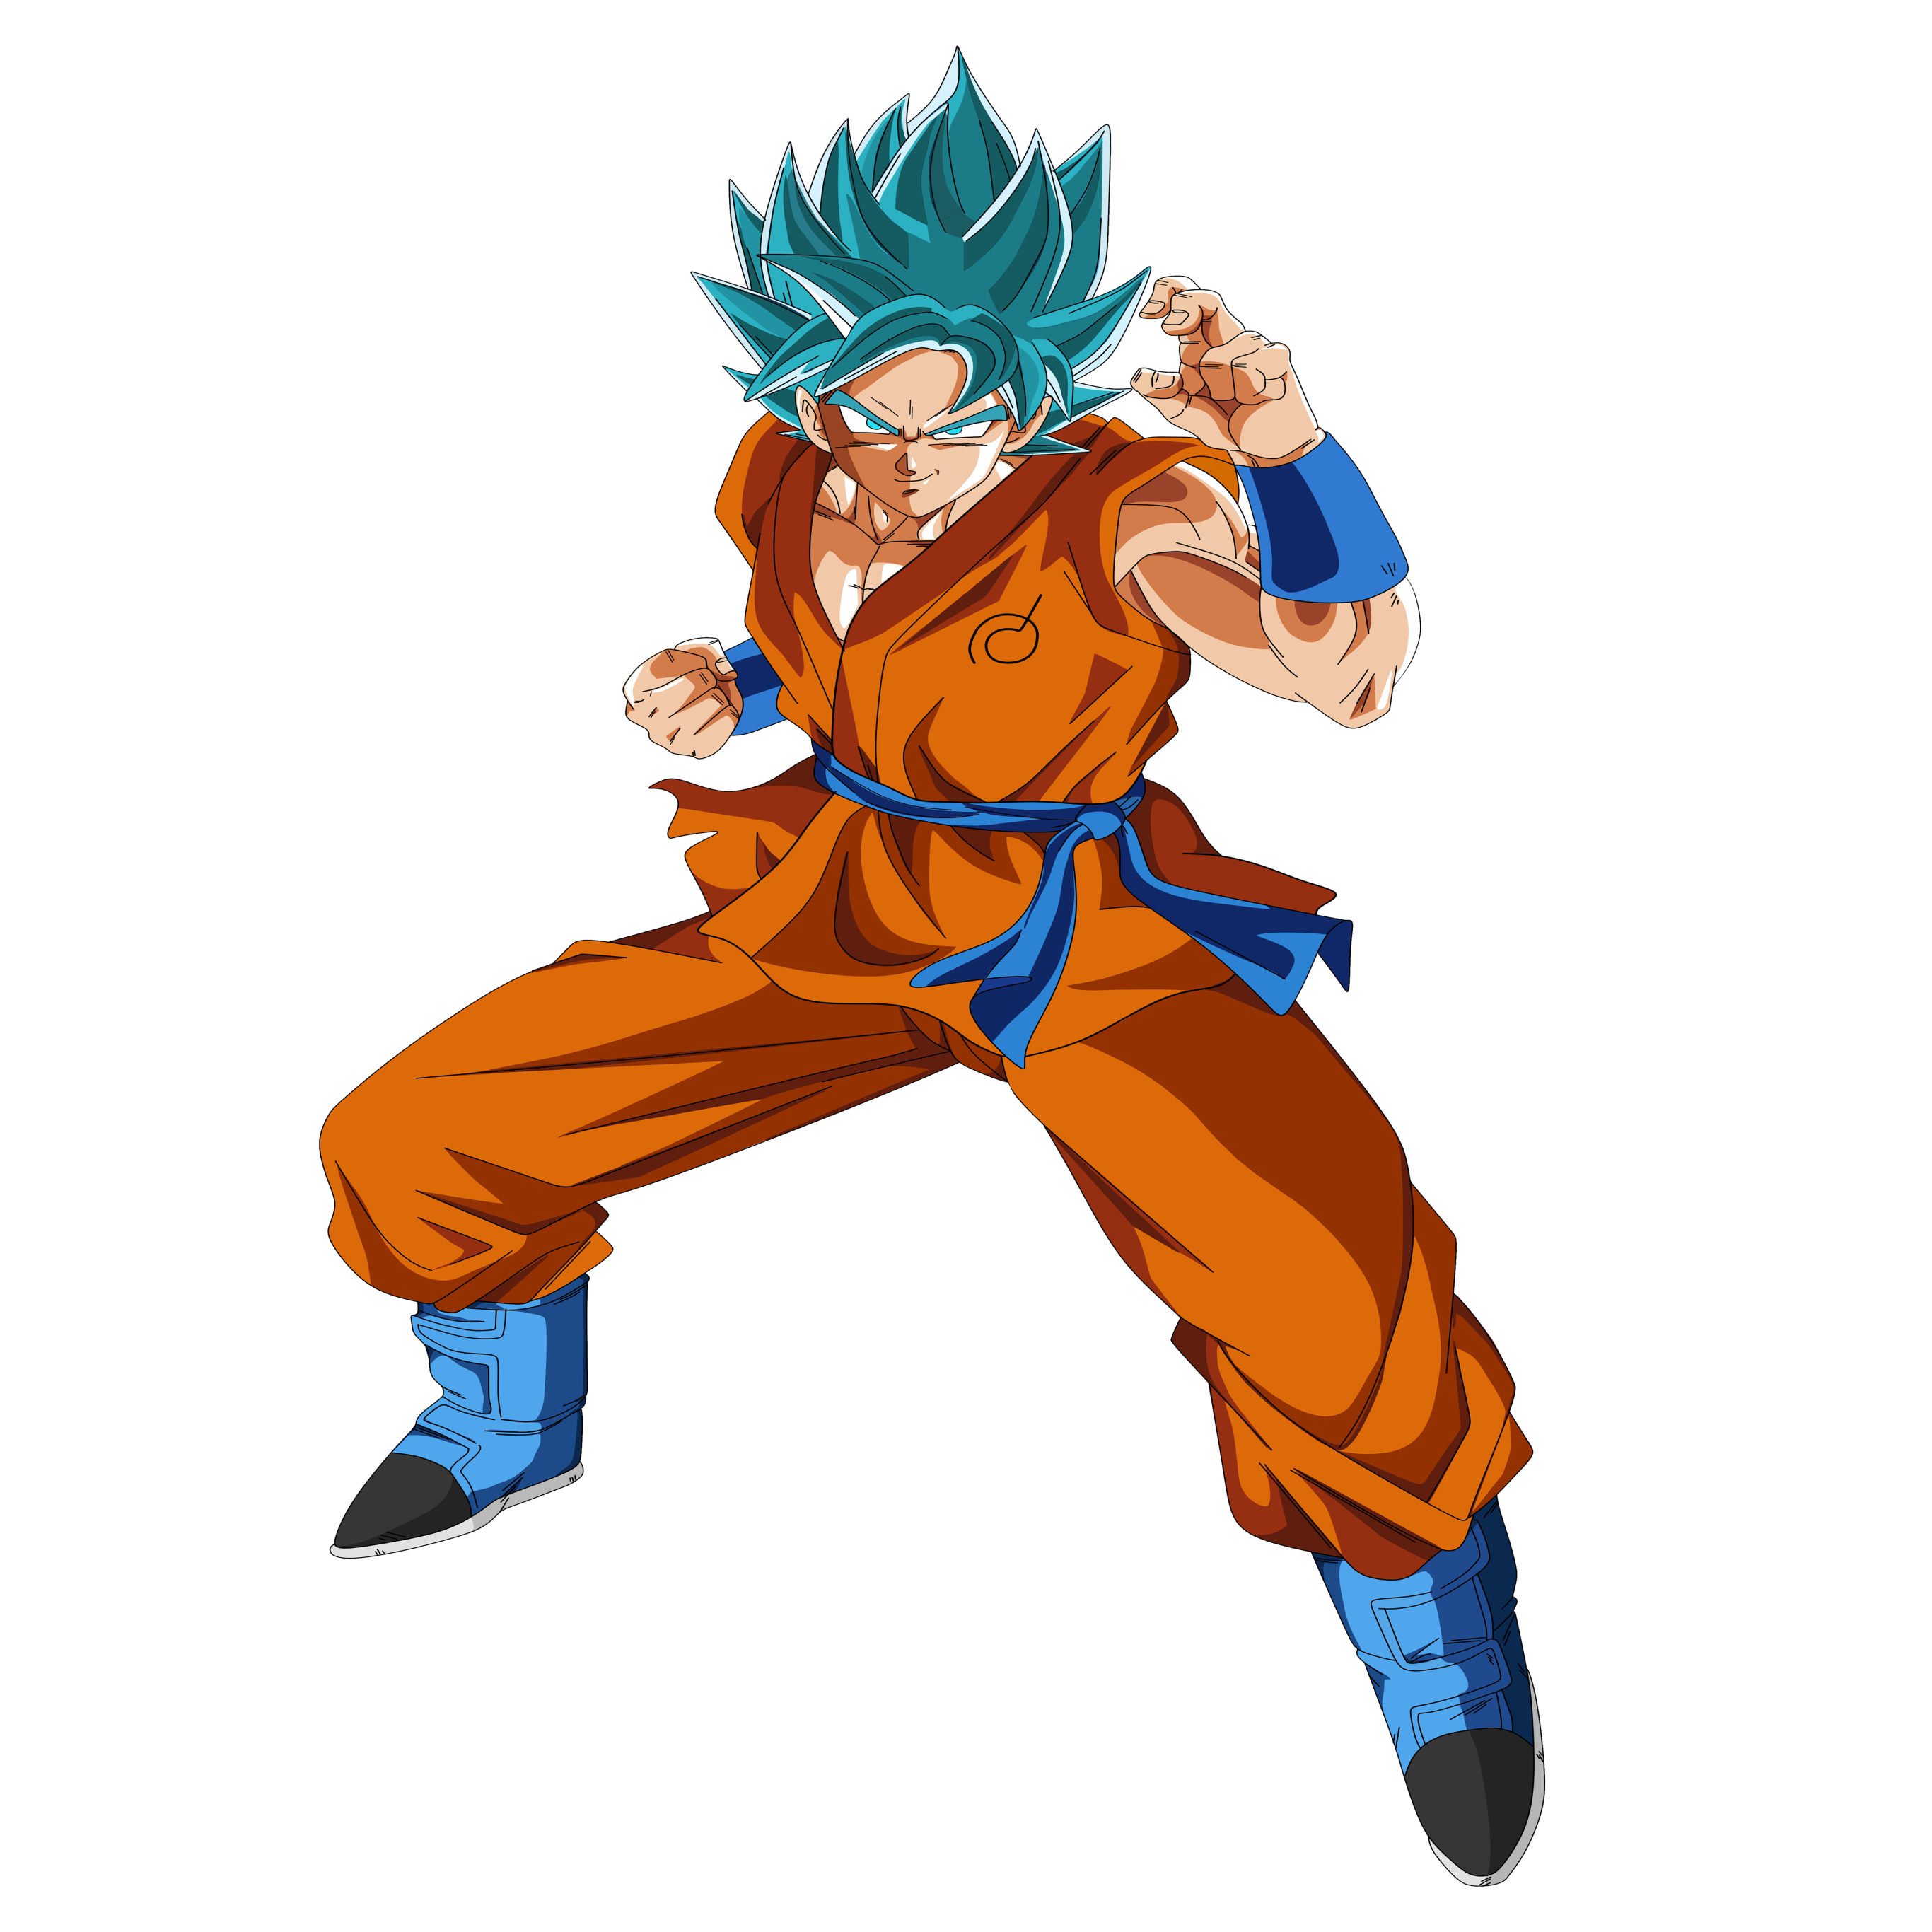 Anime Dragon Ball Super Dragon Ball Goku Mobile Wallpaper